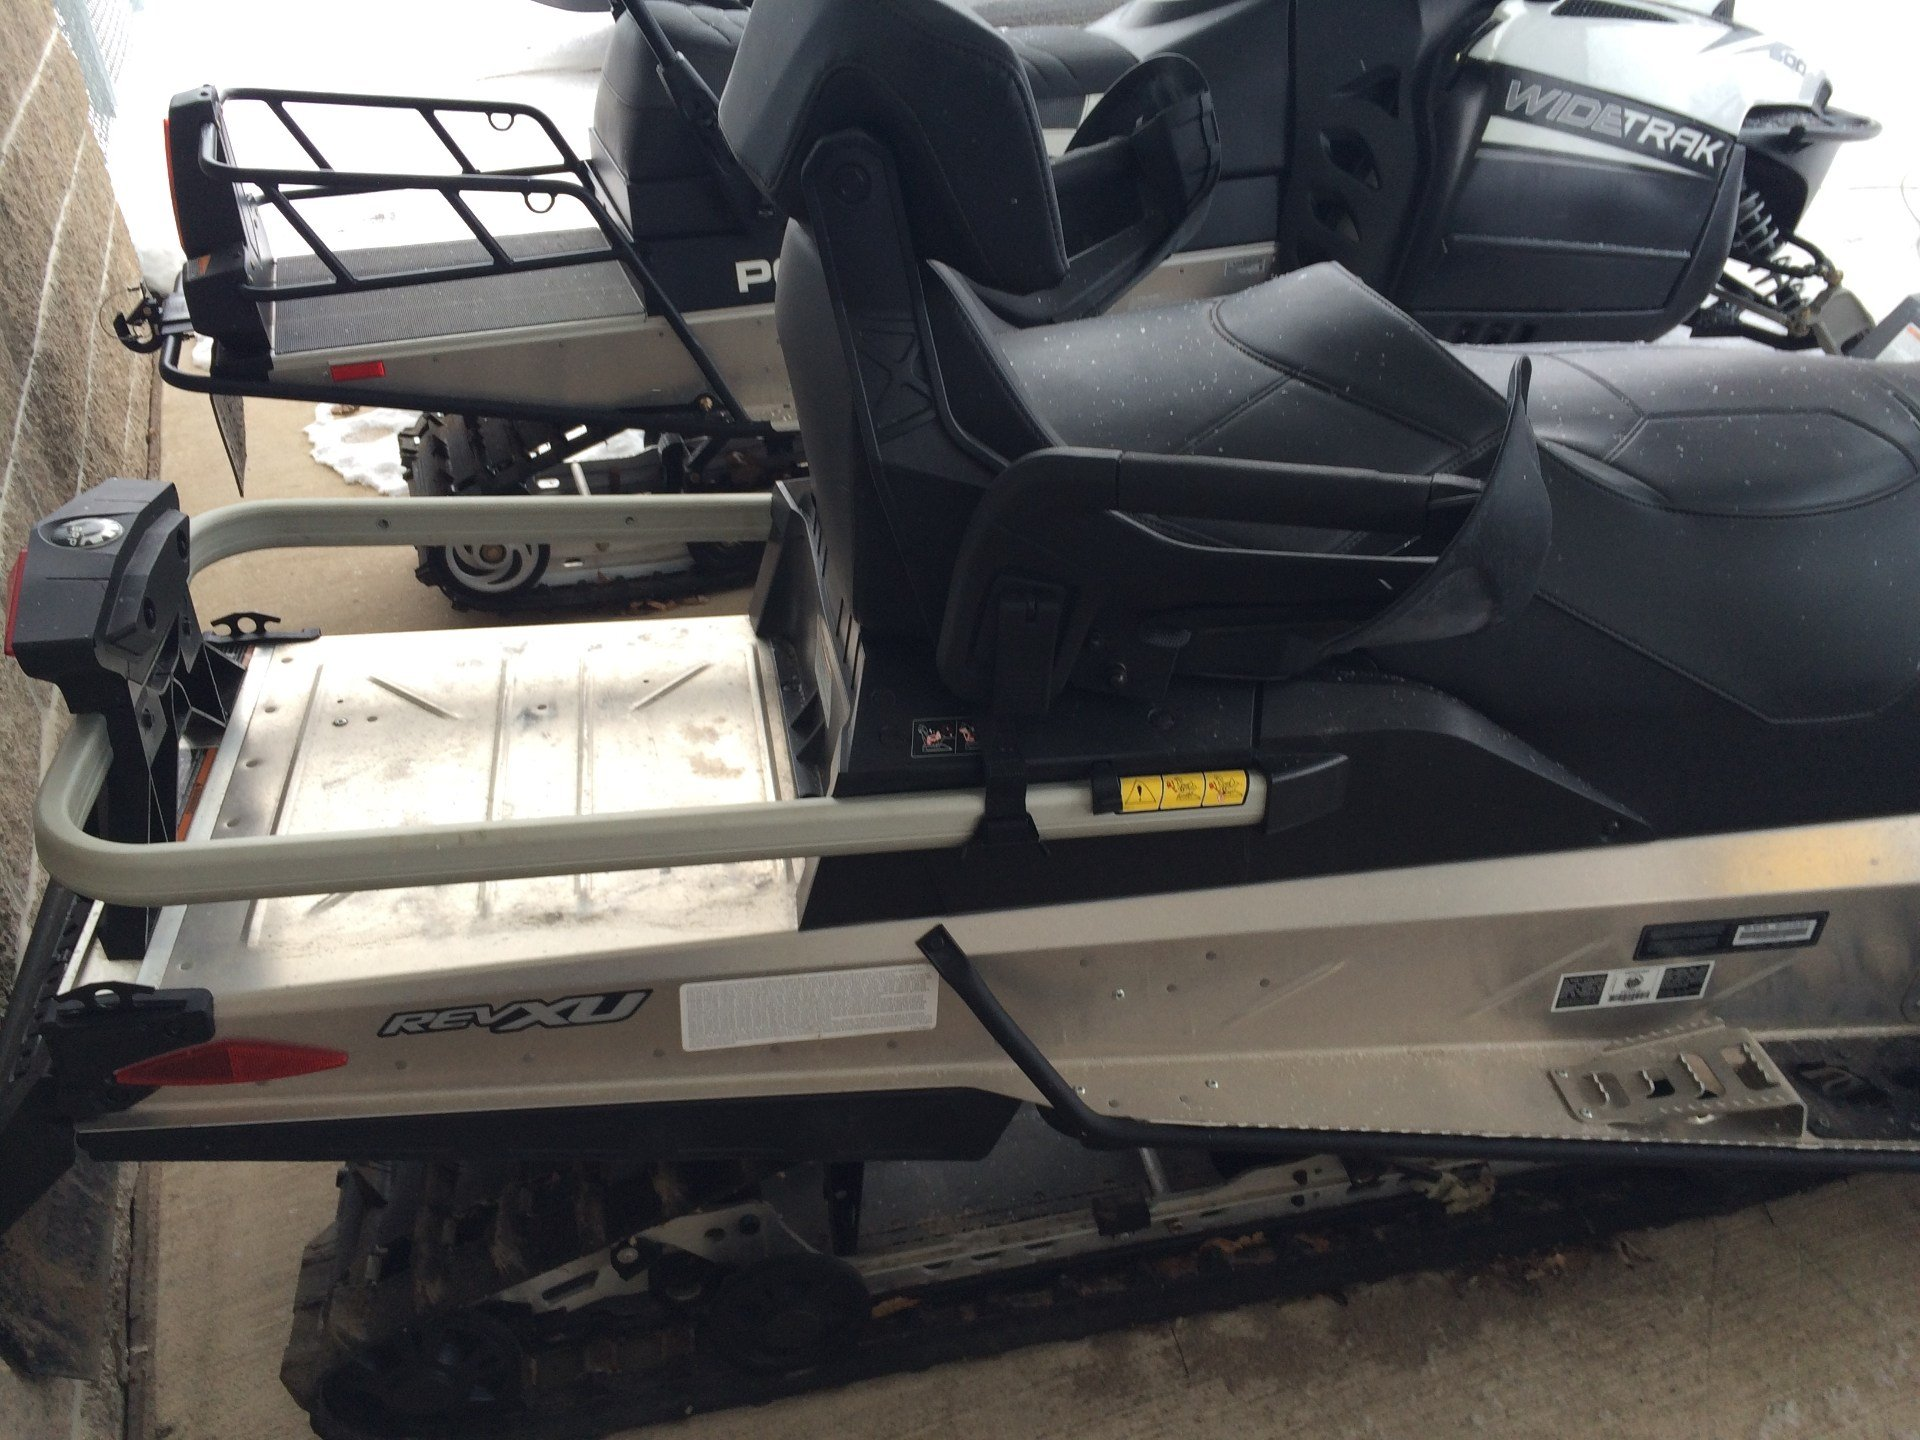 2015 Ski-Doo Expedition LE ACE 900 2